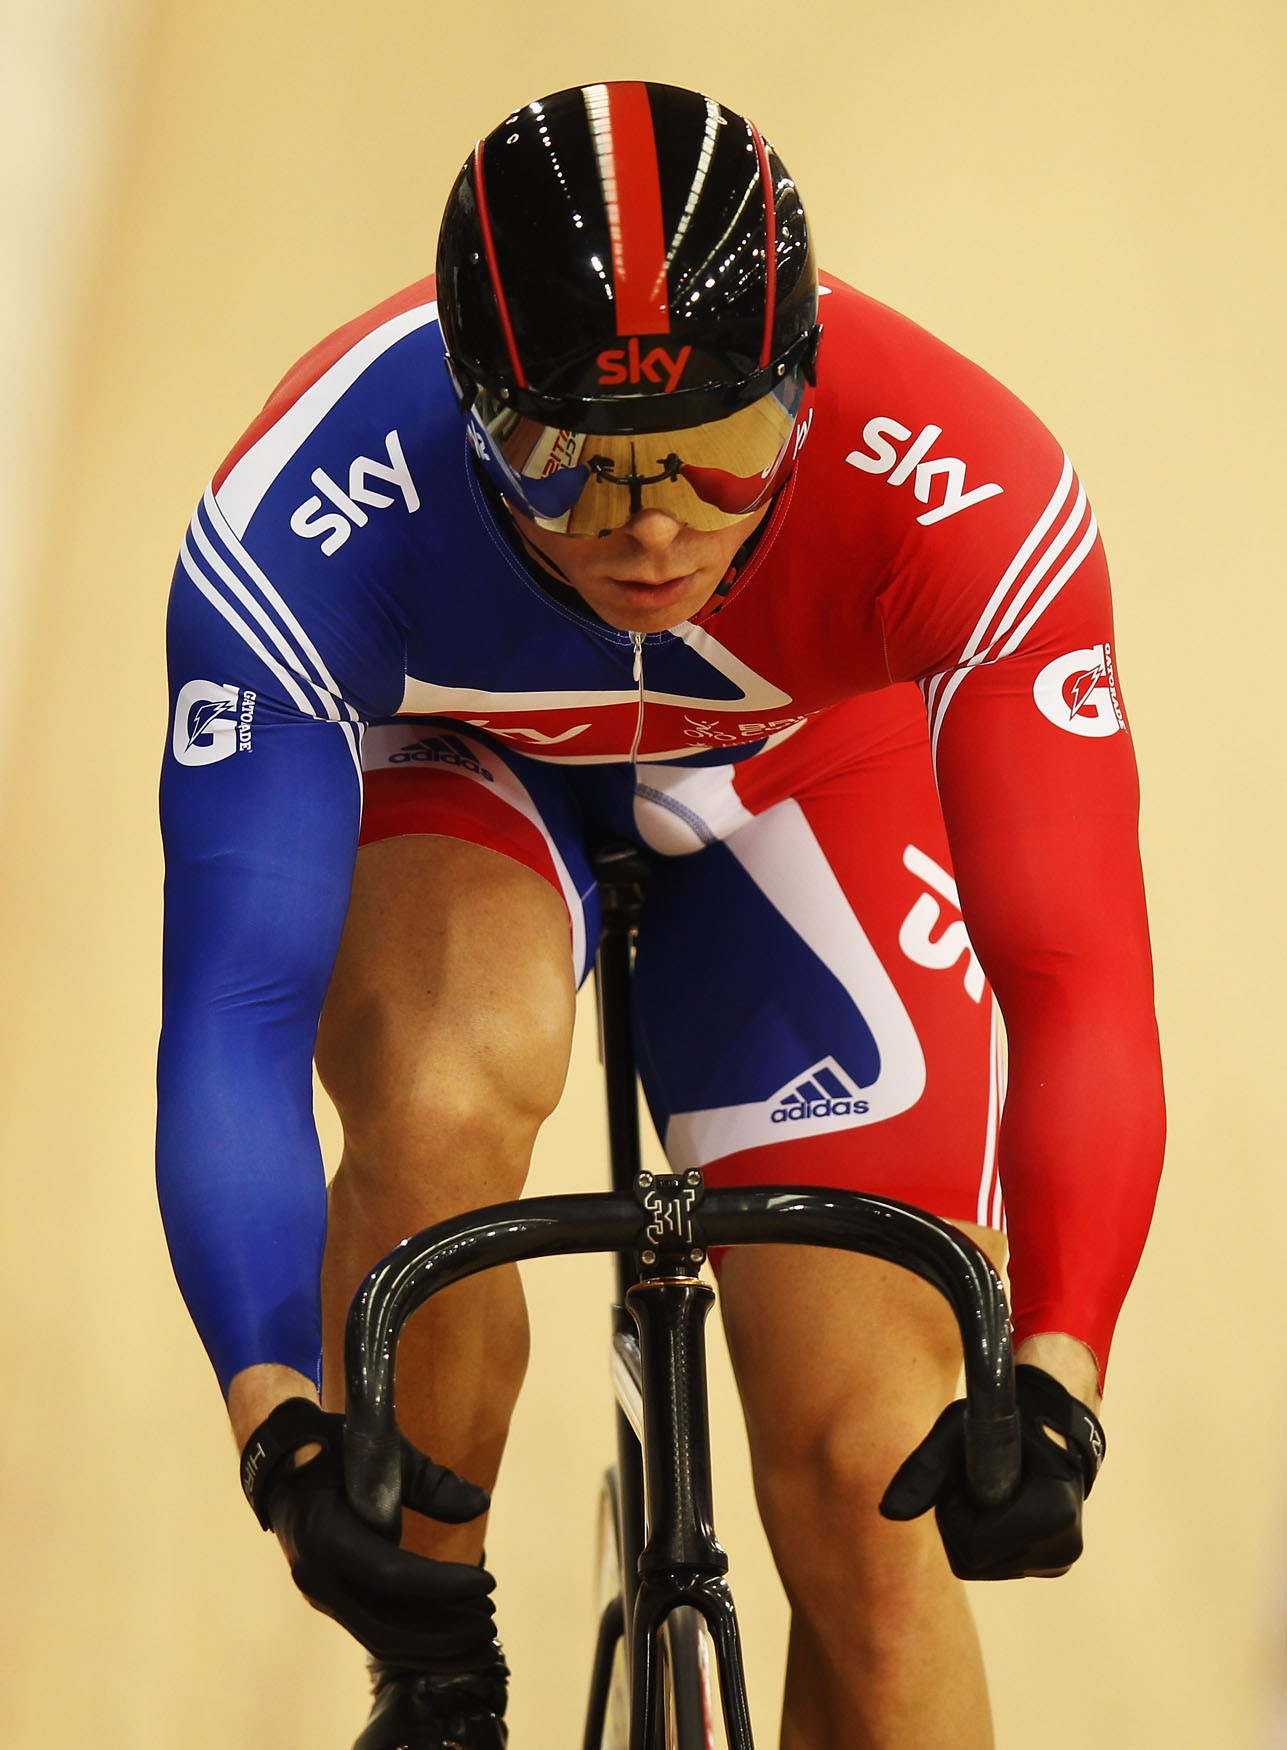 Sir Chris Hoy was dominant in the men's sprint events, winning two gold medals and a bronze